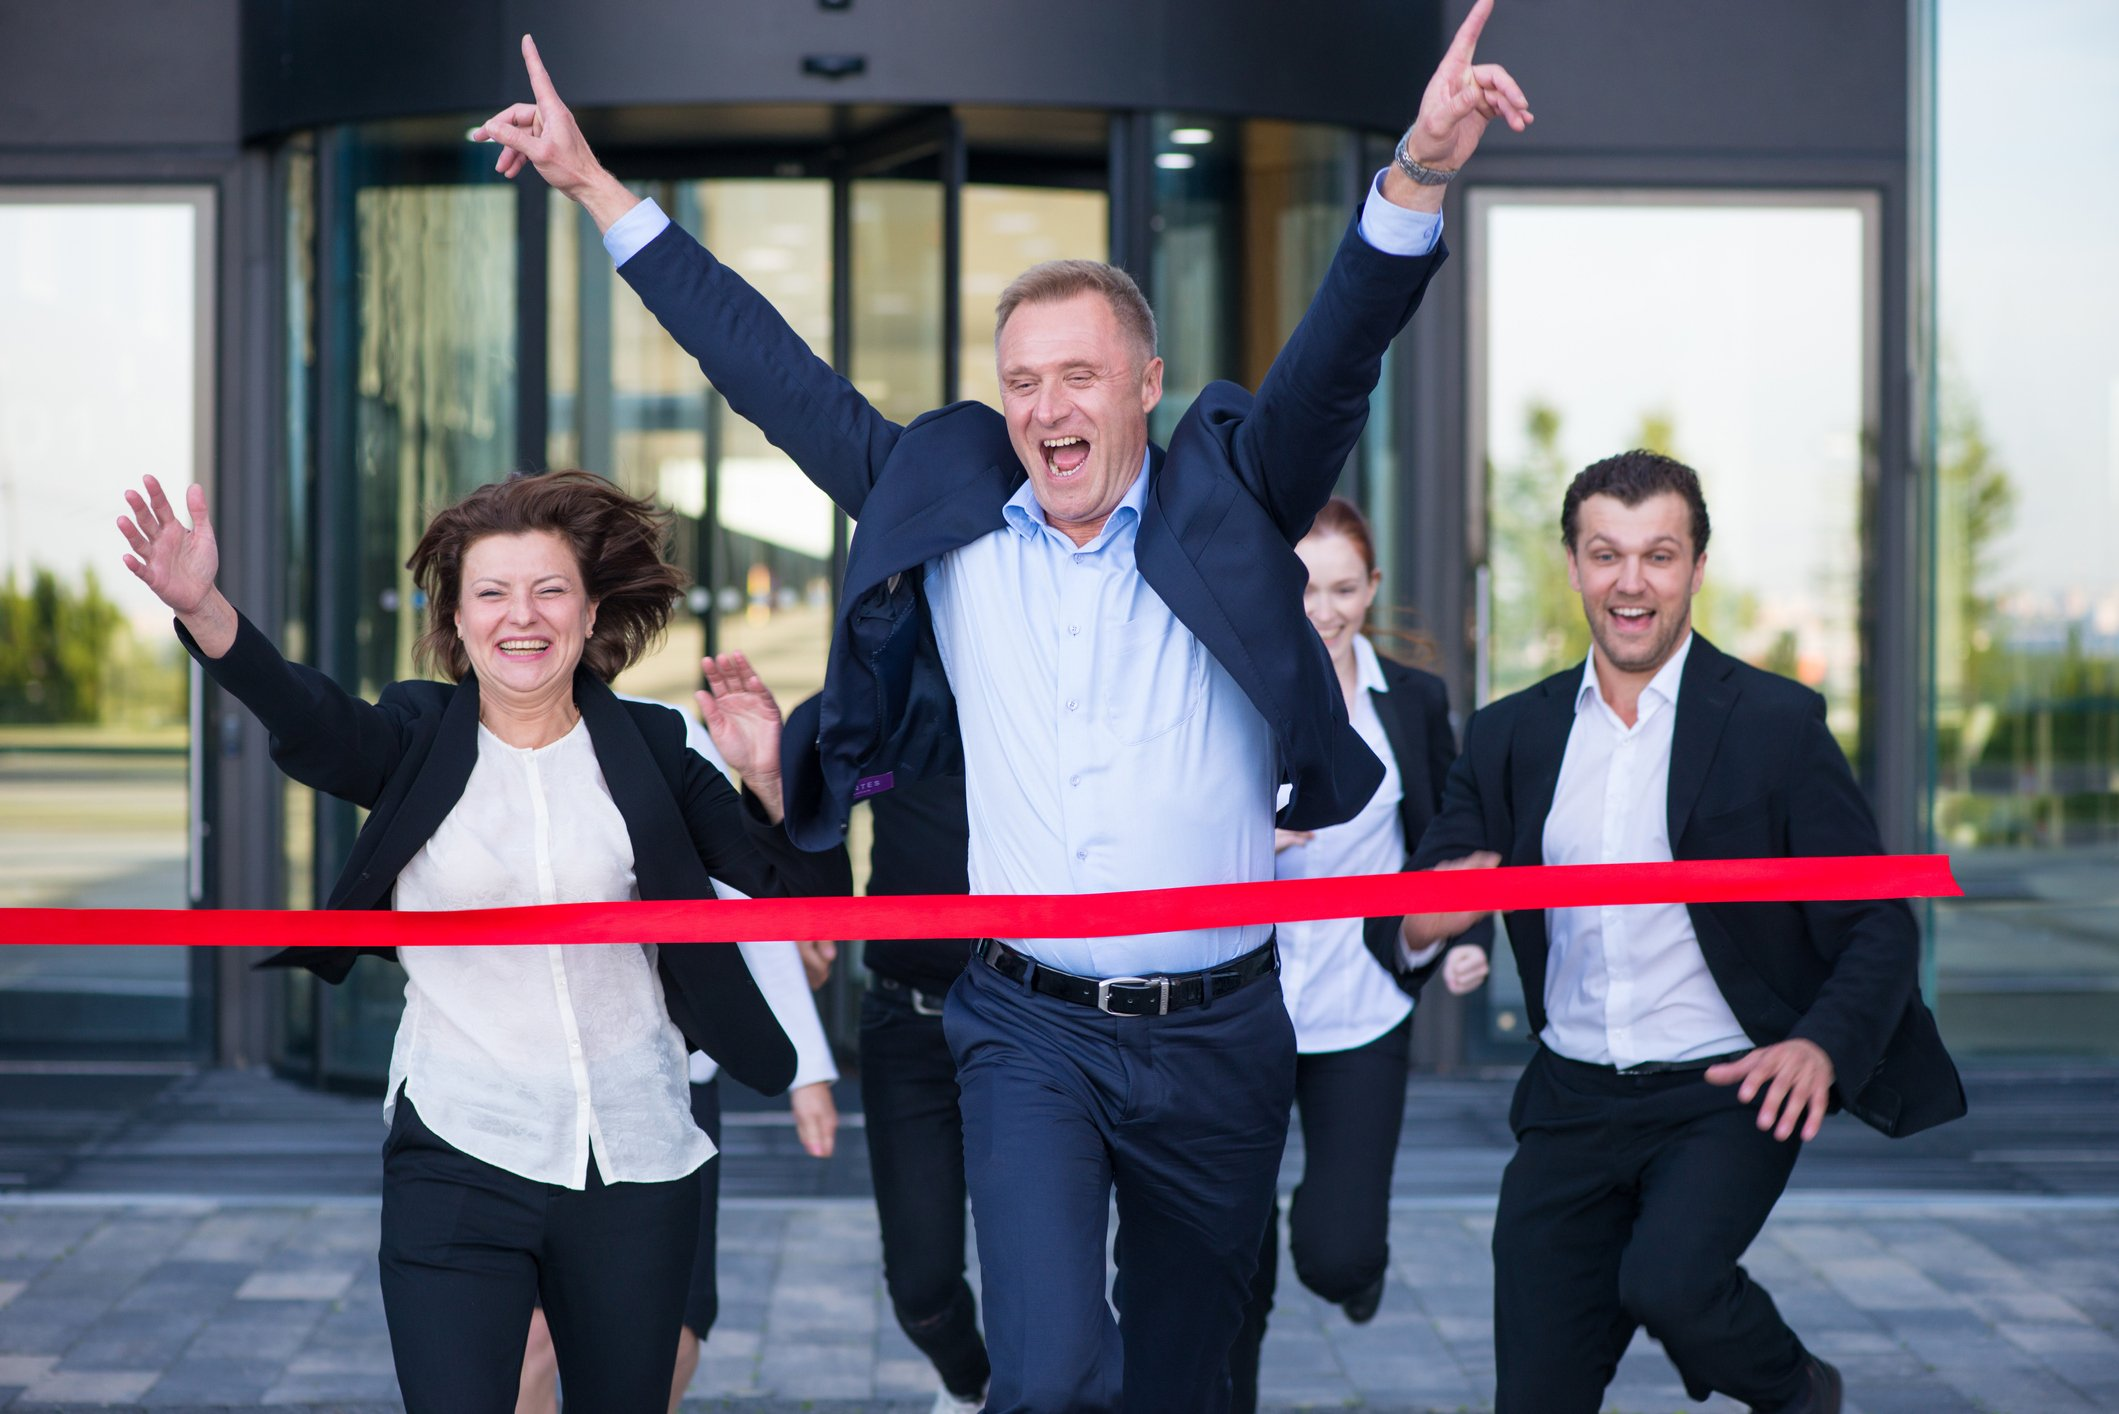 Business people triumphantly running through red ribbon.